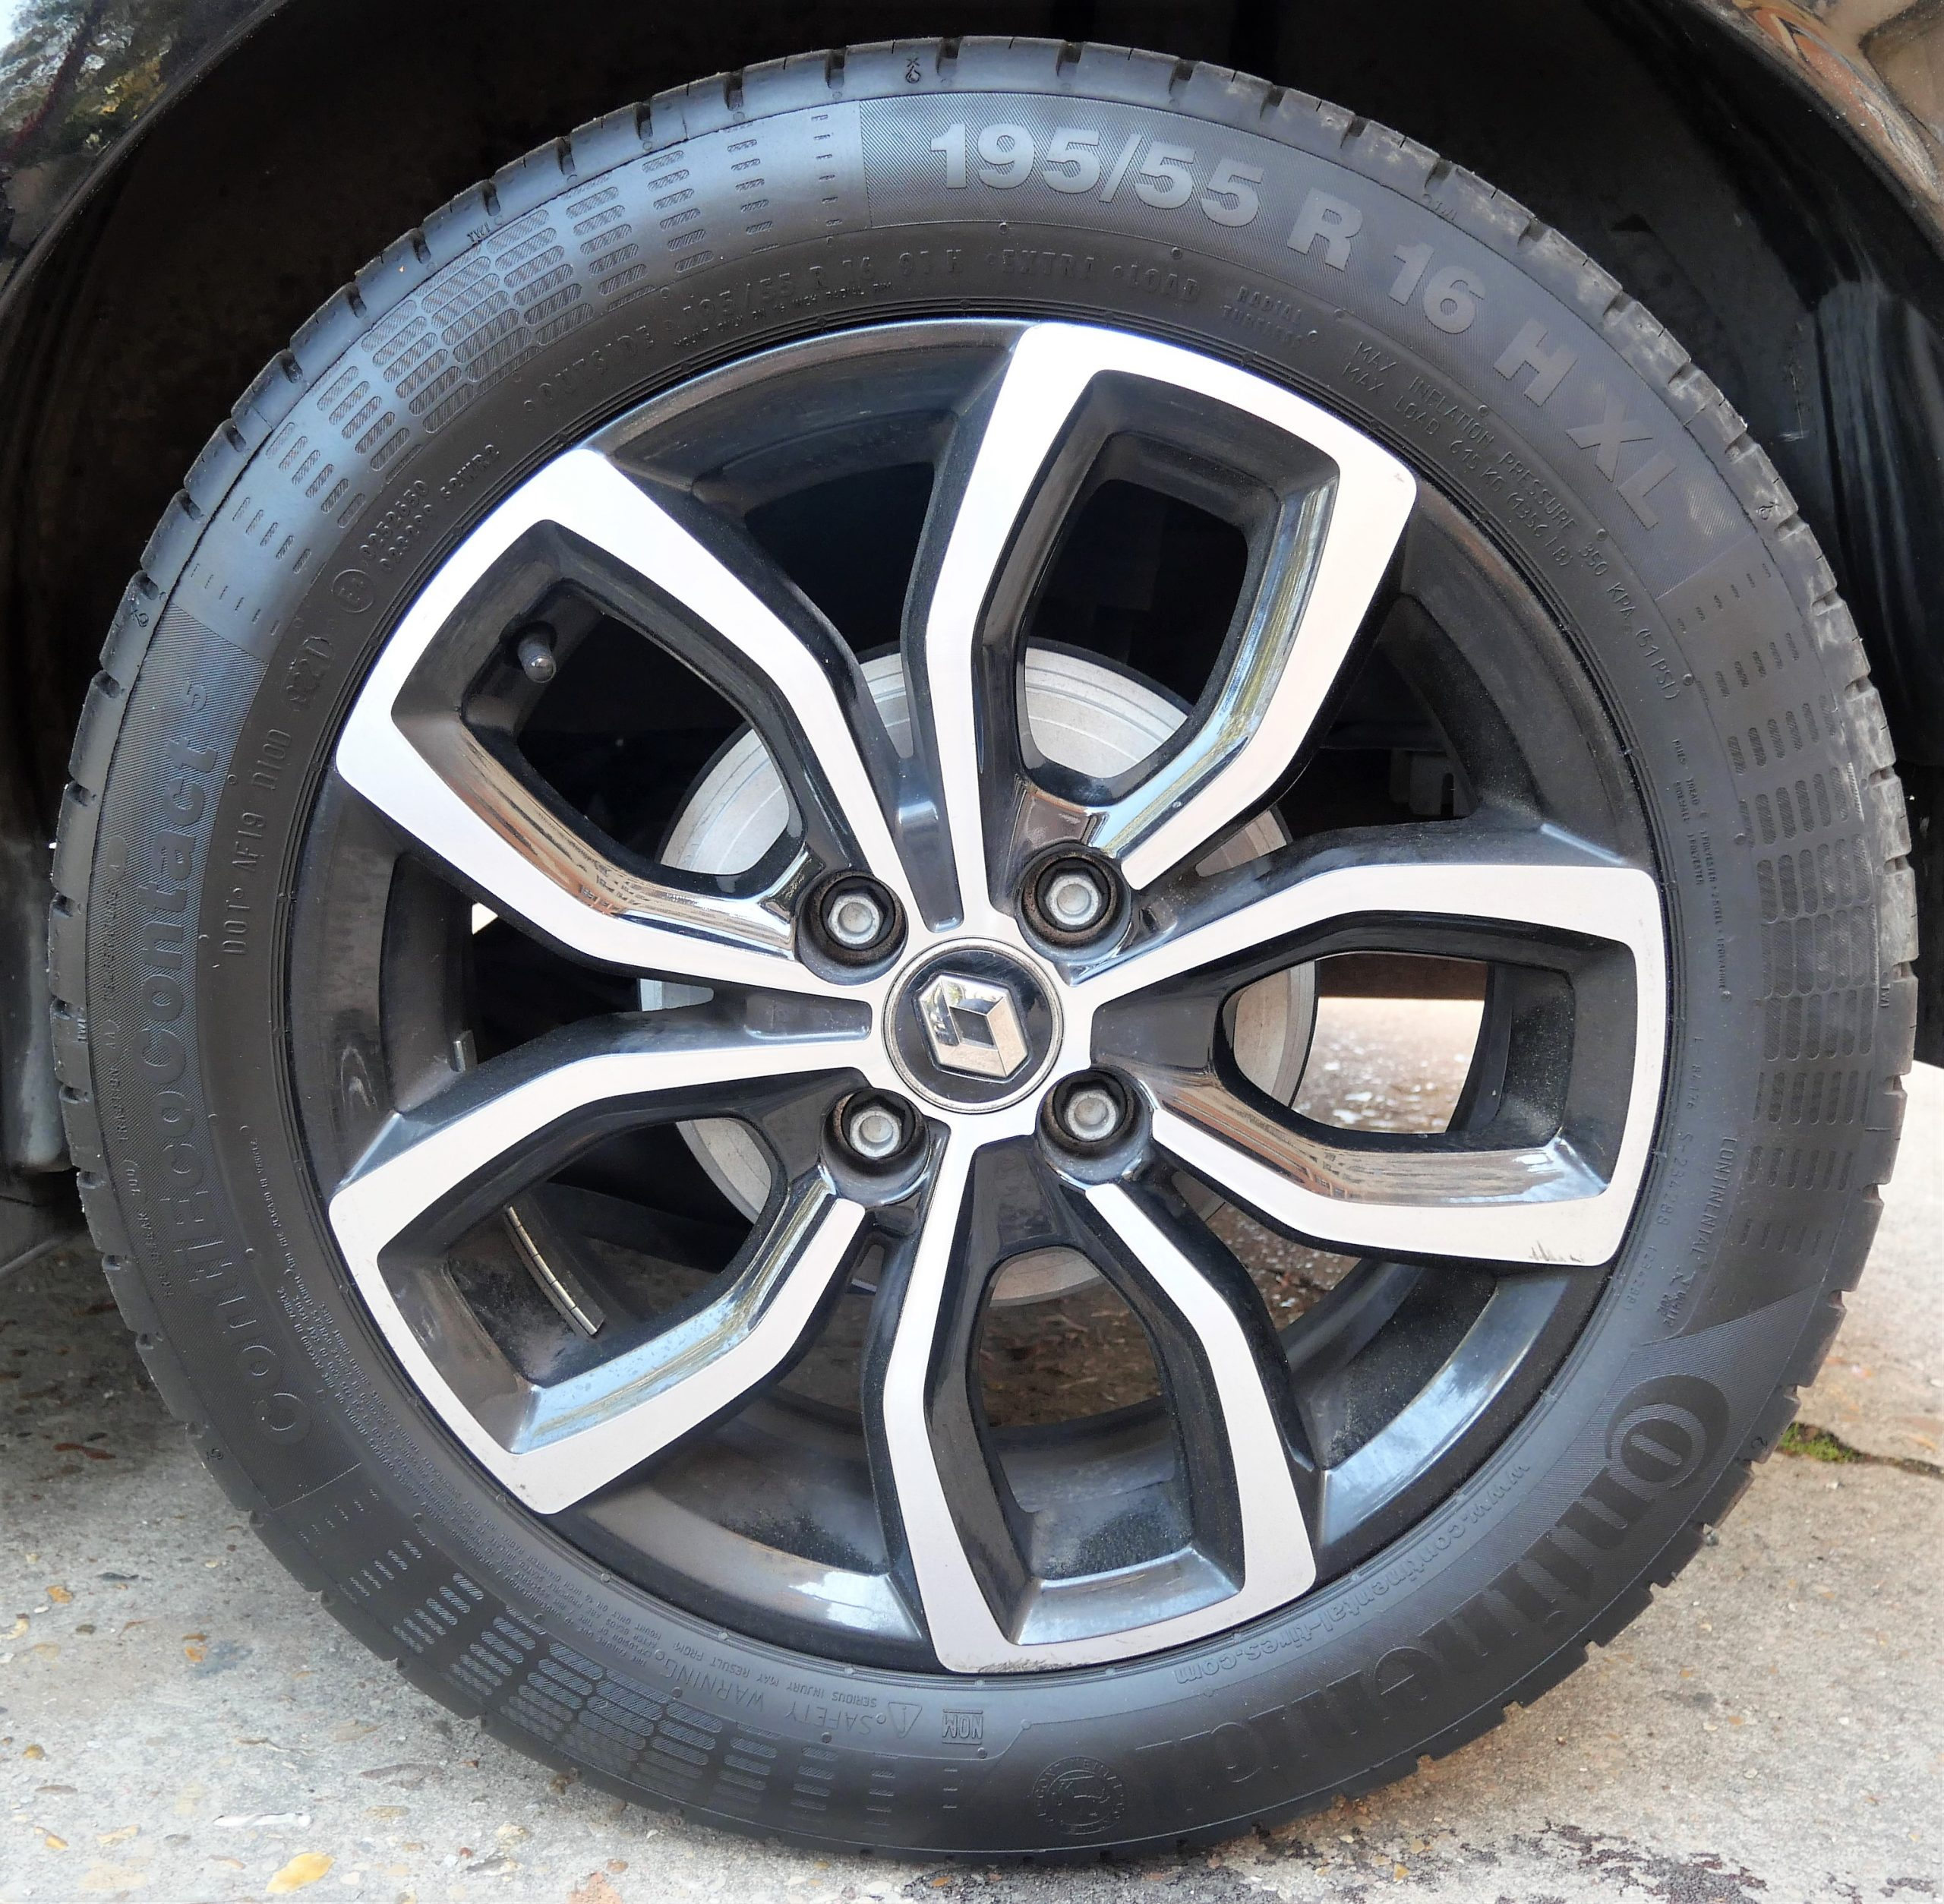 RENAULT Clio IV INTENS Phase 2 0.9 TCe 90 ch 21